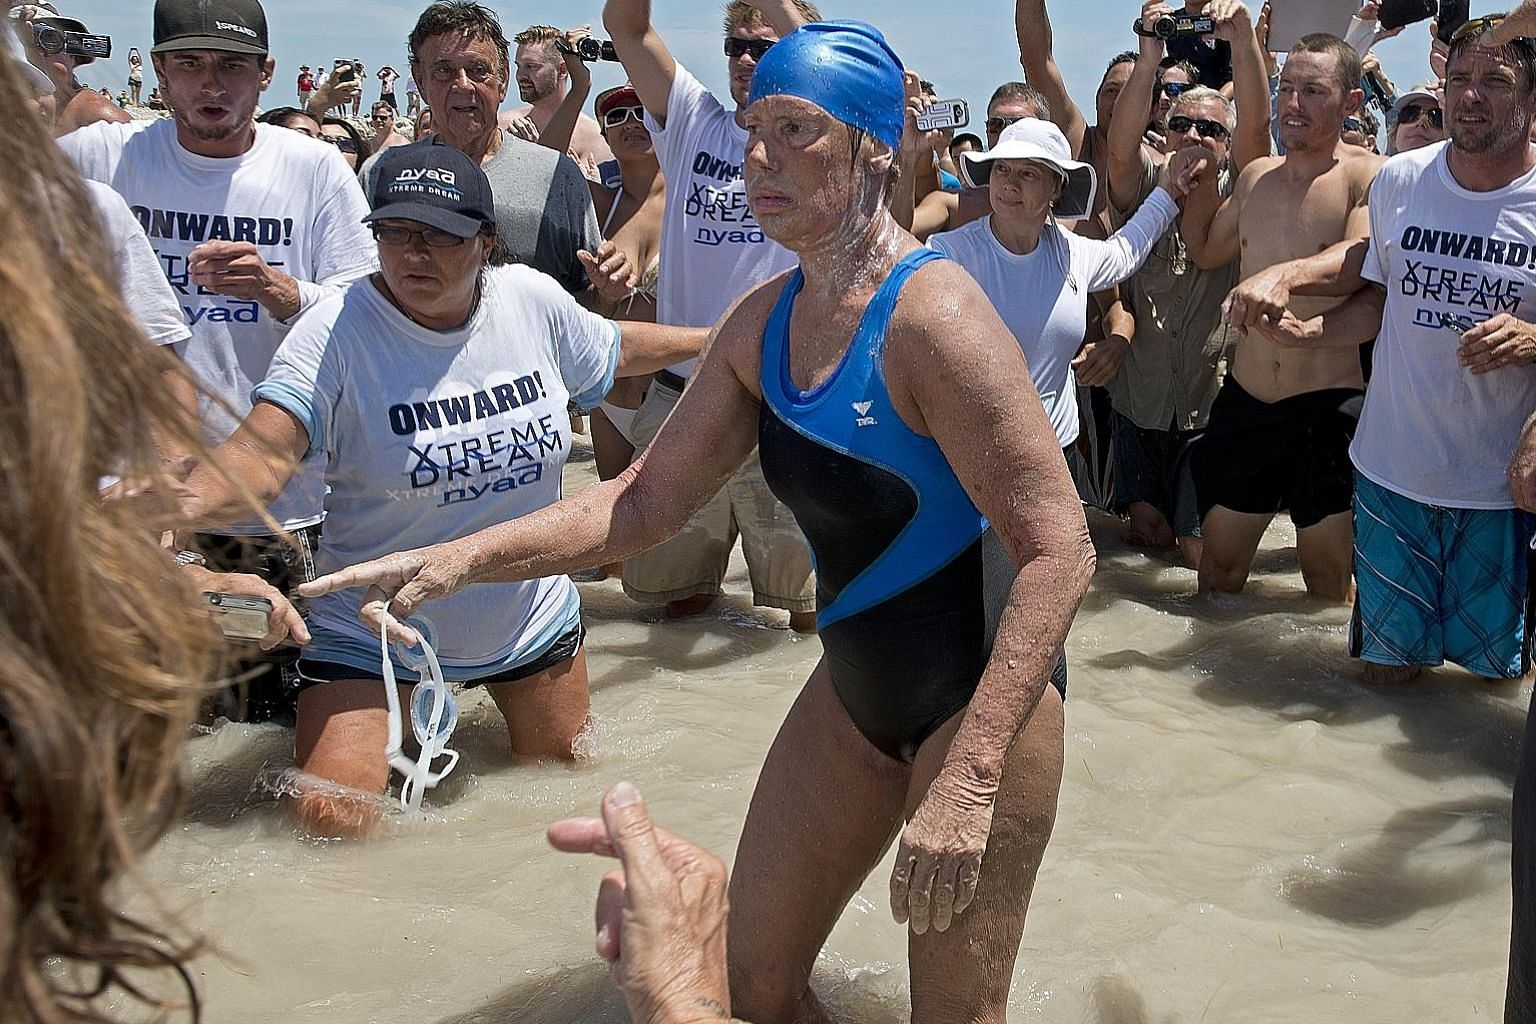 Diana Nyad emerging from the Atlantic Ocean after completing her marathon swim from Cuba to Key West, Florida in 2013 at age 64. PHOTO: AGENCE FRANCE-PRESSE